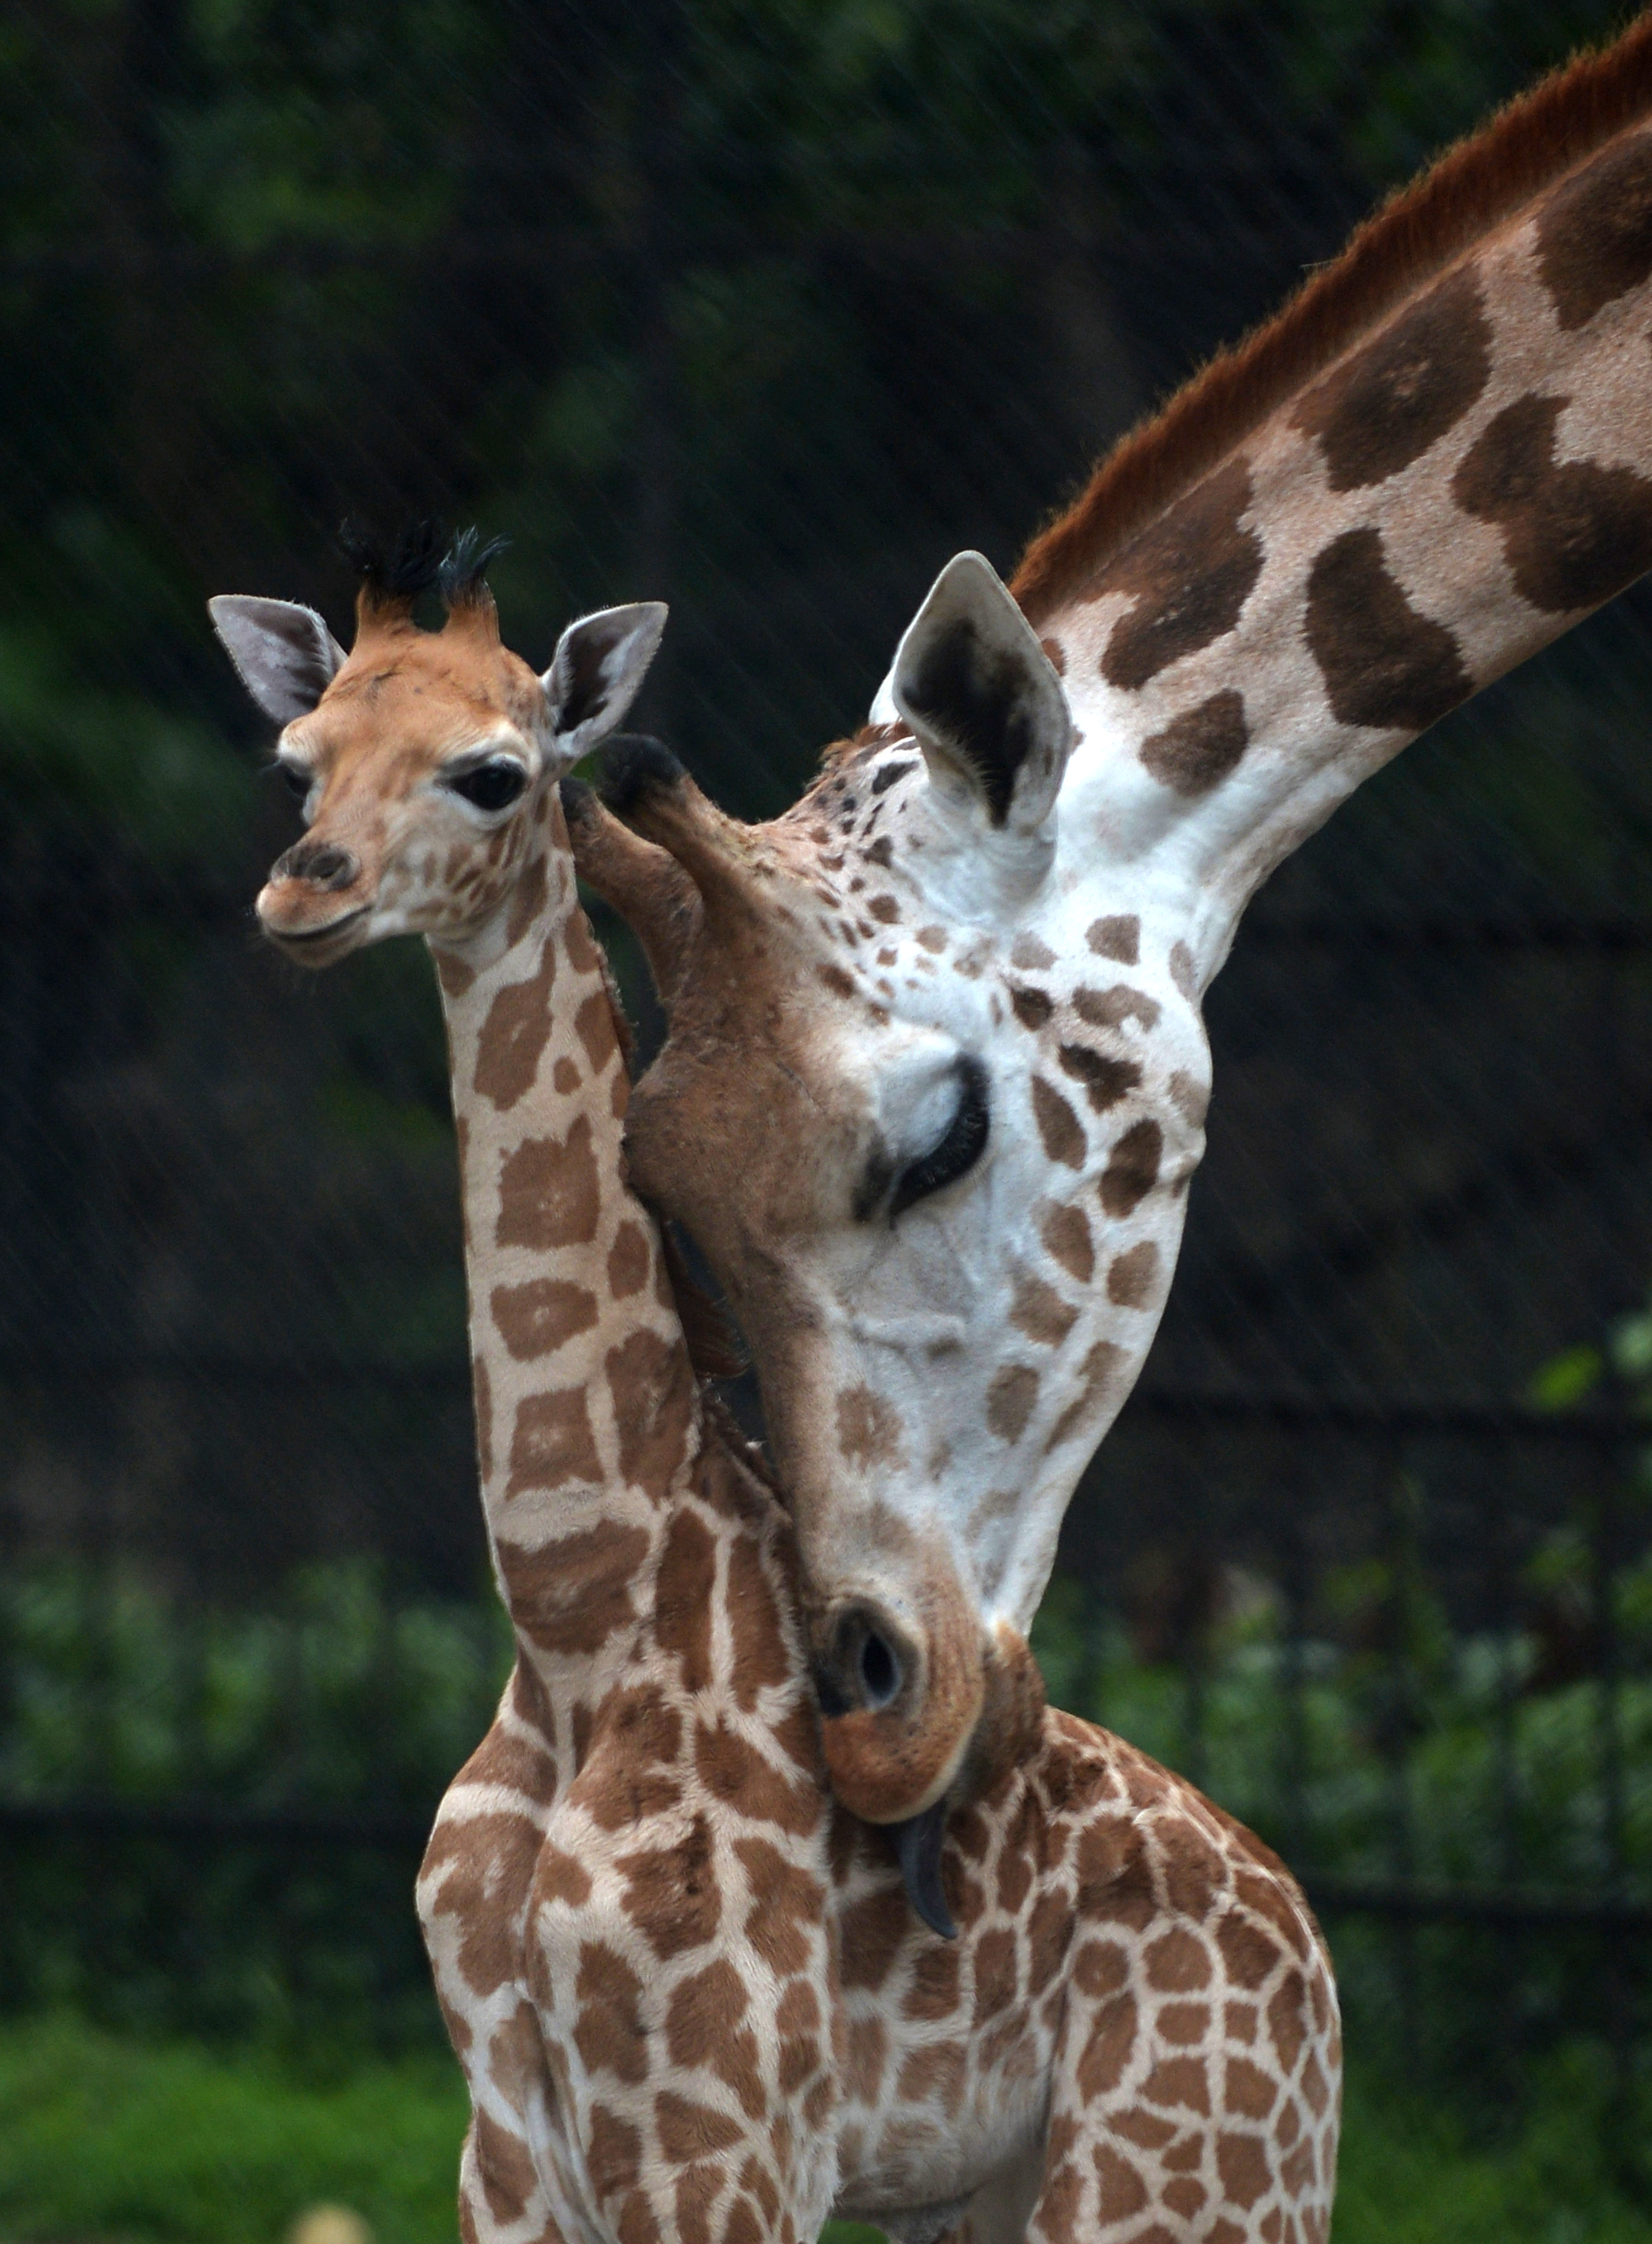 A mother giraffe licks her 20-day old calf at the Alipore Zoological Garden in Kolkata, India on June 10, 2013.